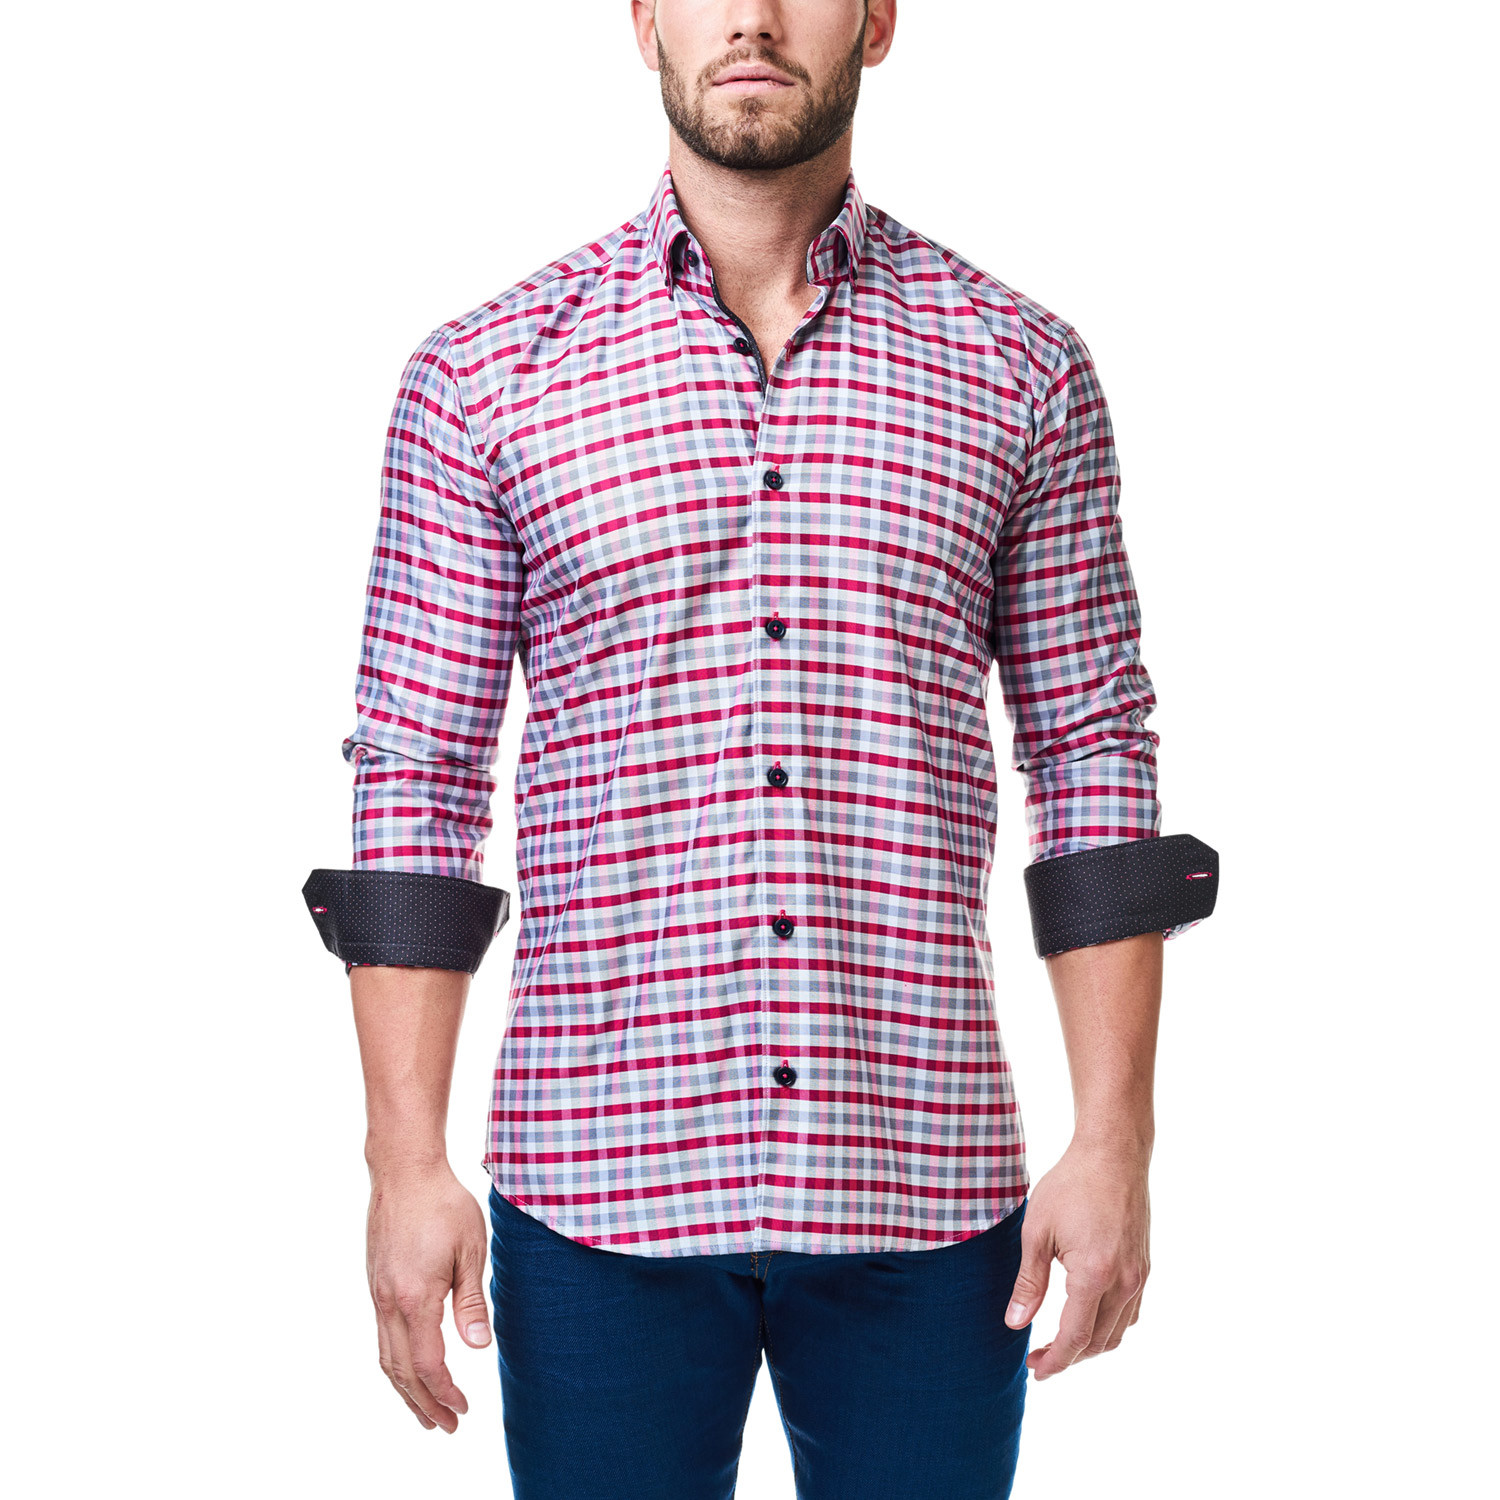 Kali Check Dress Shirt Grey Red S Maceoo Touch